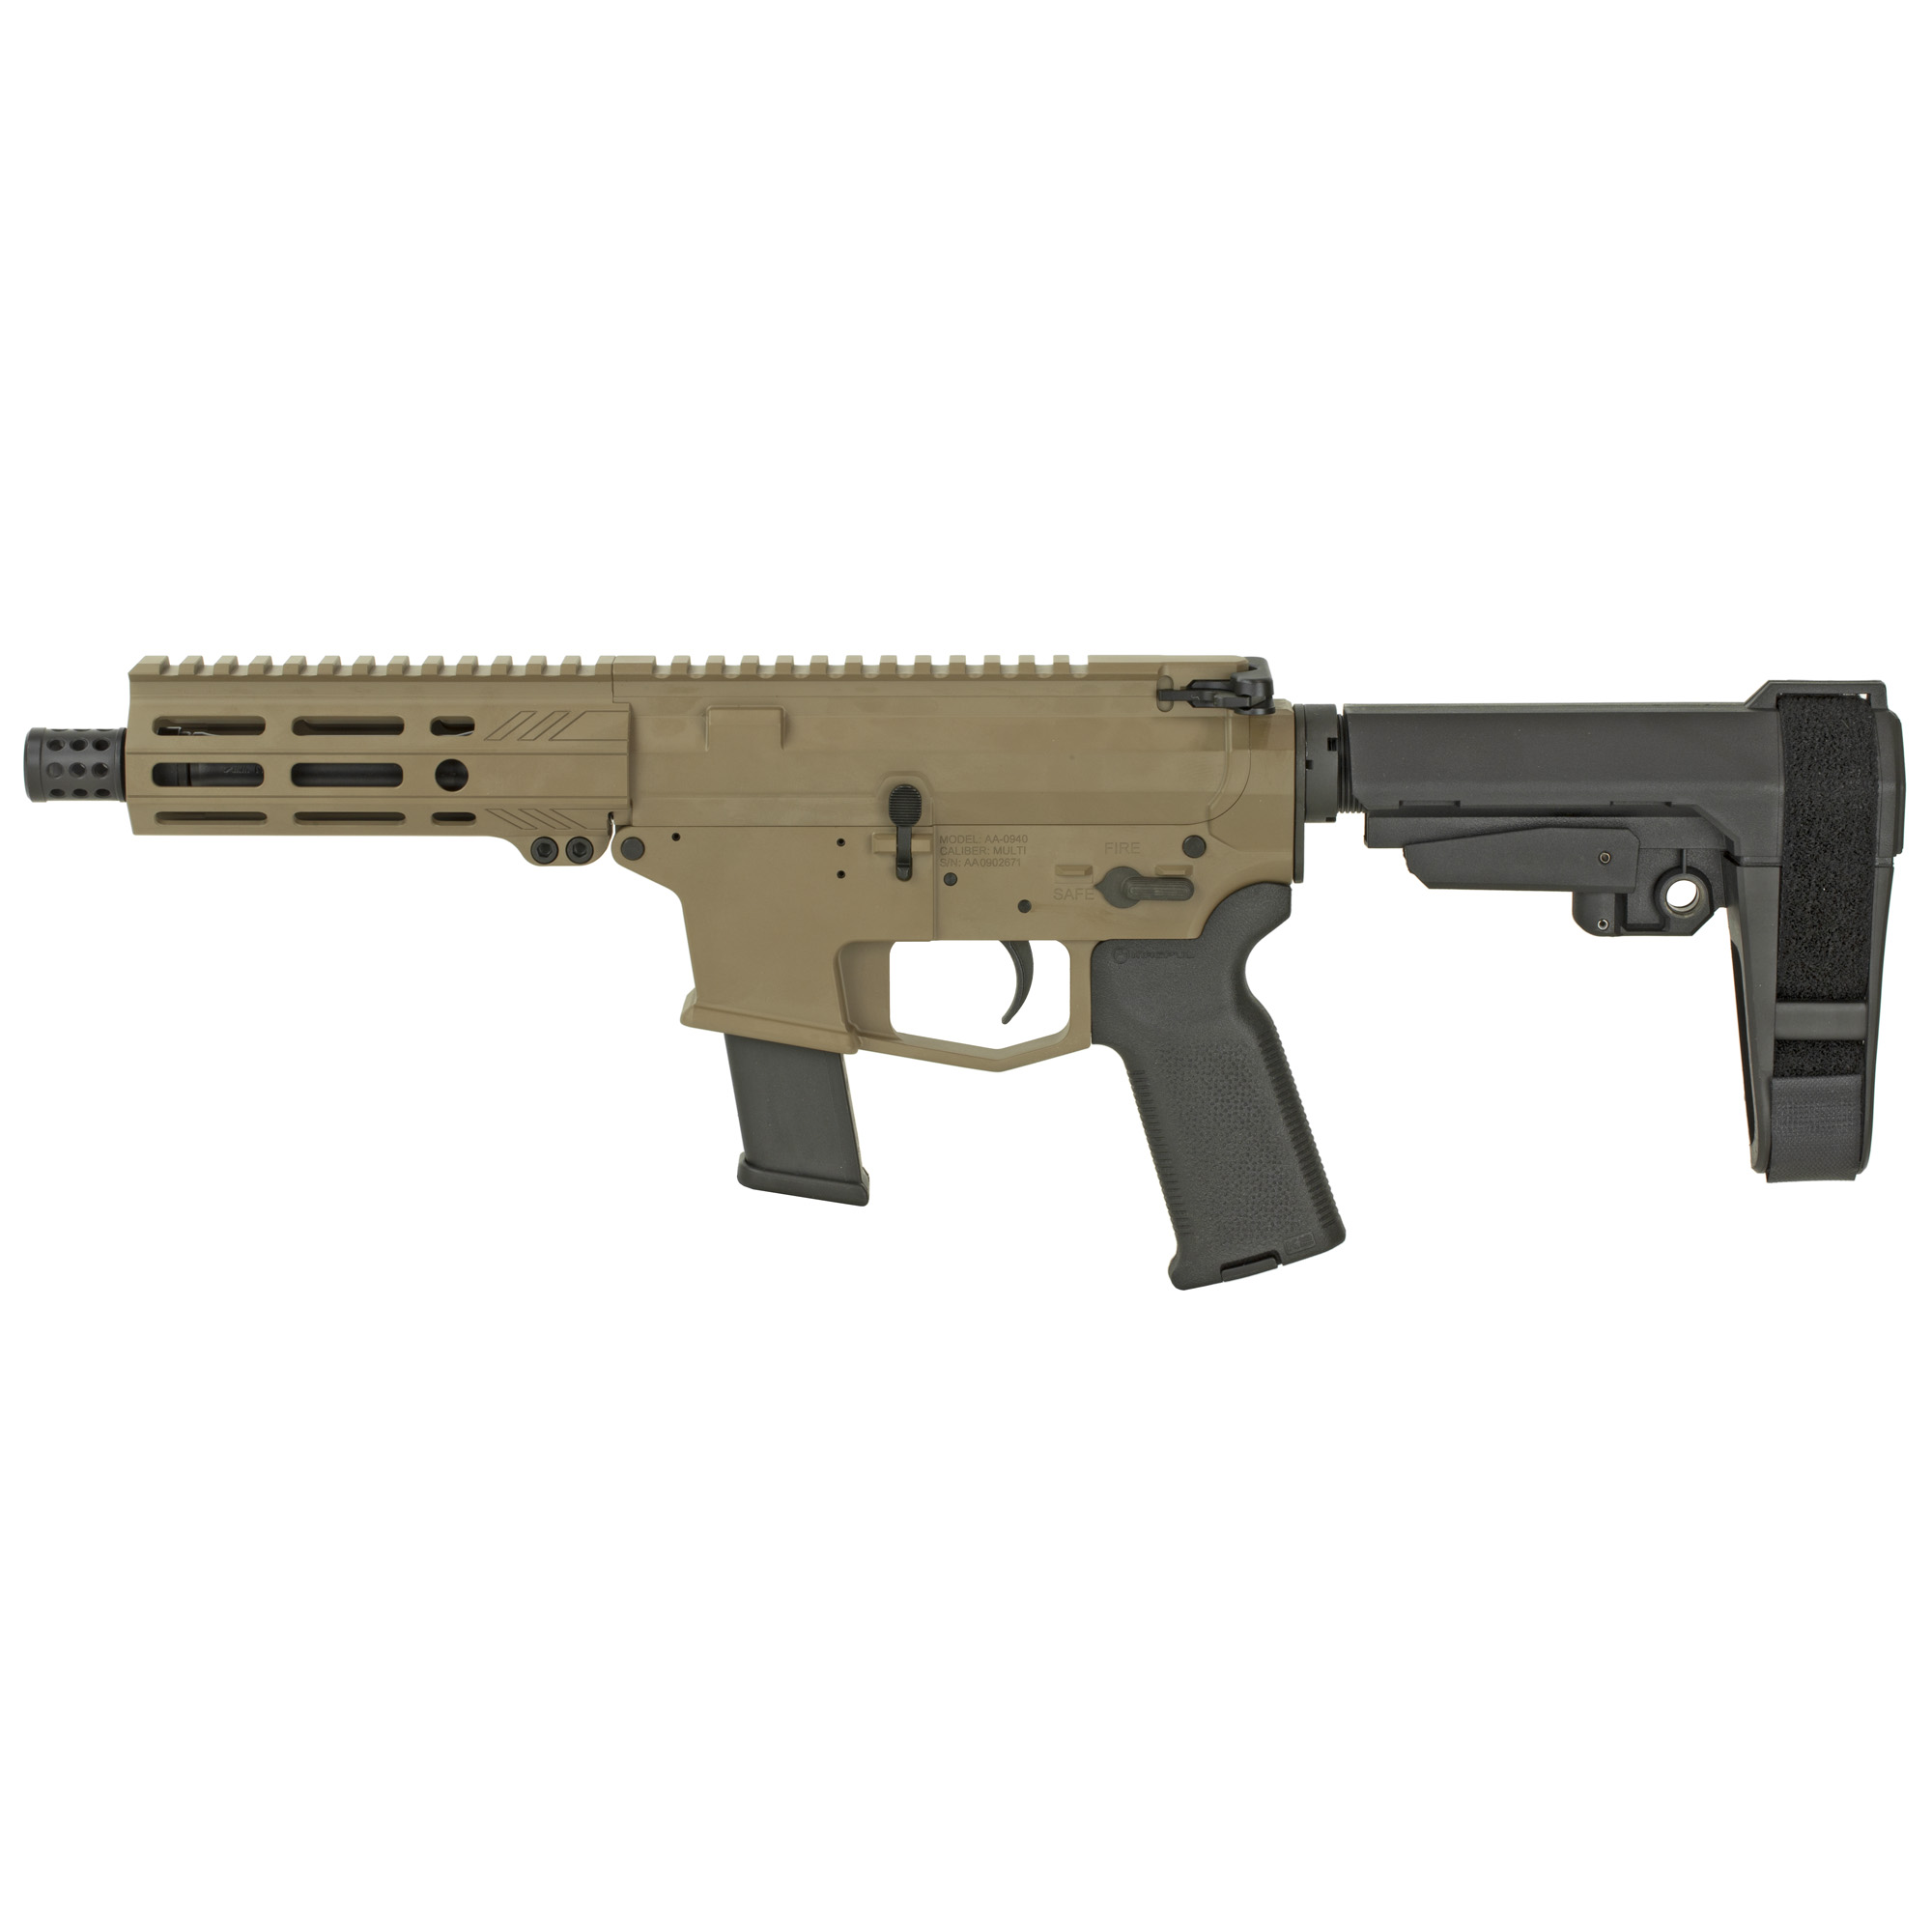 """The UDP-9 Pistol with SB Tactical SBA3 stabilizing brace is a compact AR-9 style firearm chambered in 9mm and fed with GLOCK(R) magazines. It features last round bolt hold open"""" an integrated trigger guard"""" flared magwell and a 5.5"""" free float M-LOK hand guard with a modern"""" ergonomic"""" 7 side design. Machined from 7075-T6 aluminum and finished in a beautiful Magpul(R) Flat Dark Earth (FDE) Cerakote! The UDP-9 comes with a lifetime warranty. Includes one GLOCK(R) OEM 9mm magazine."""